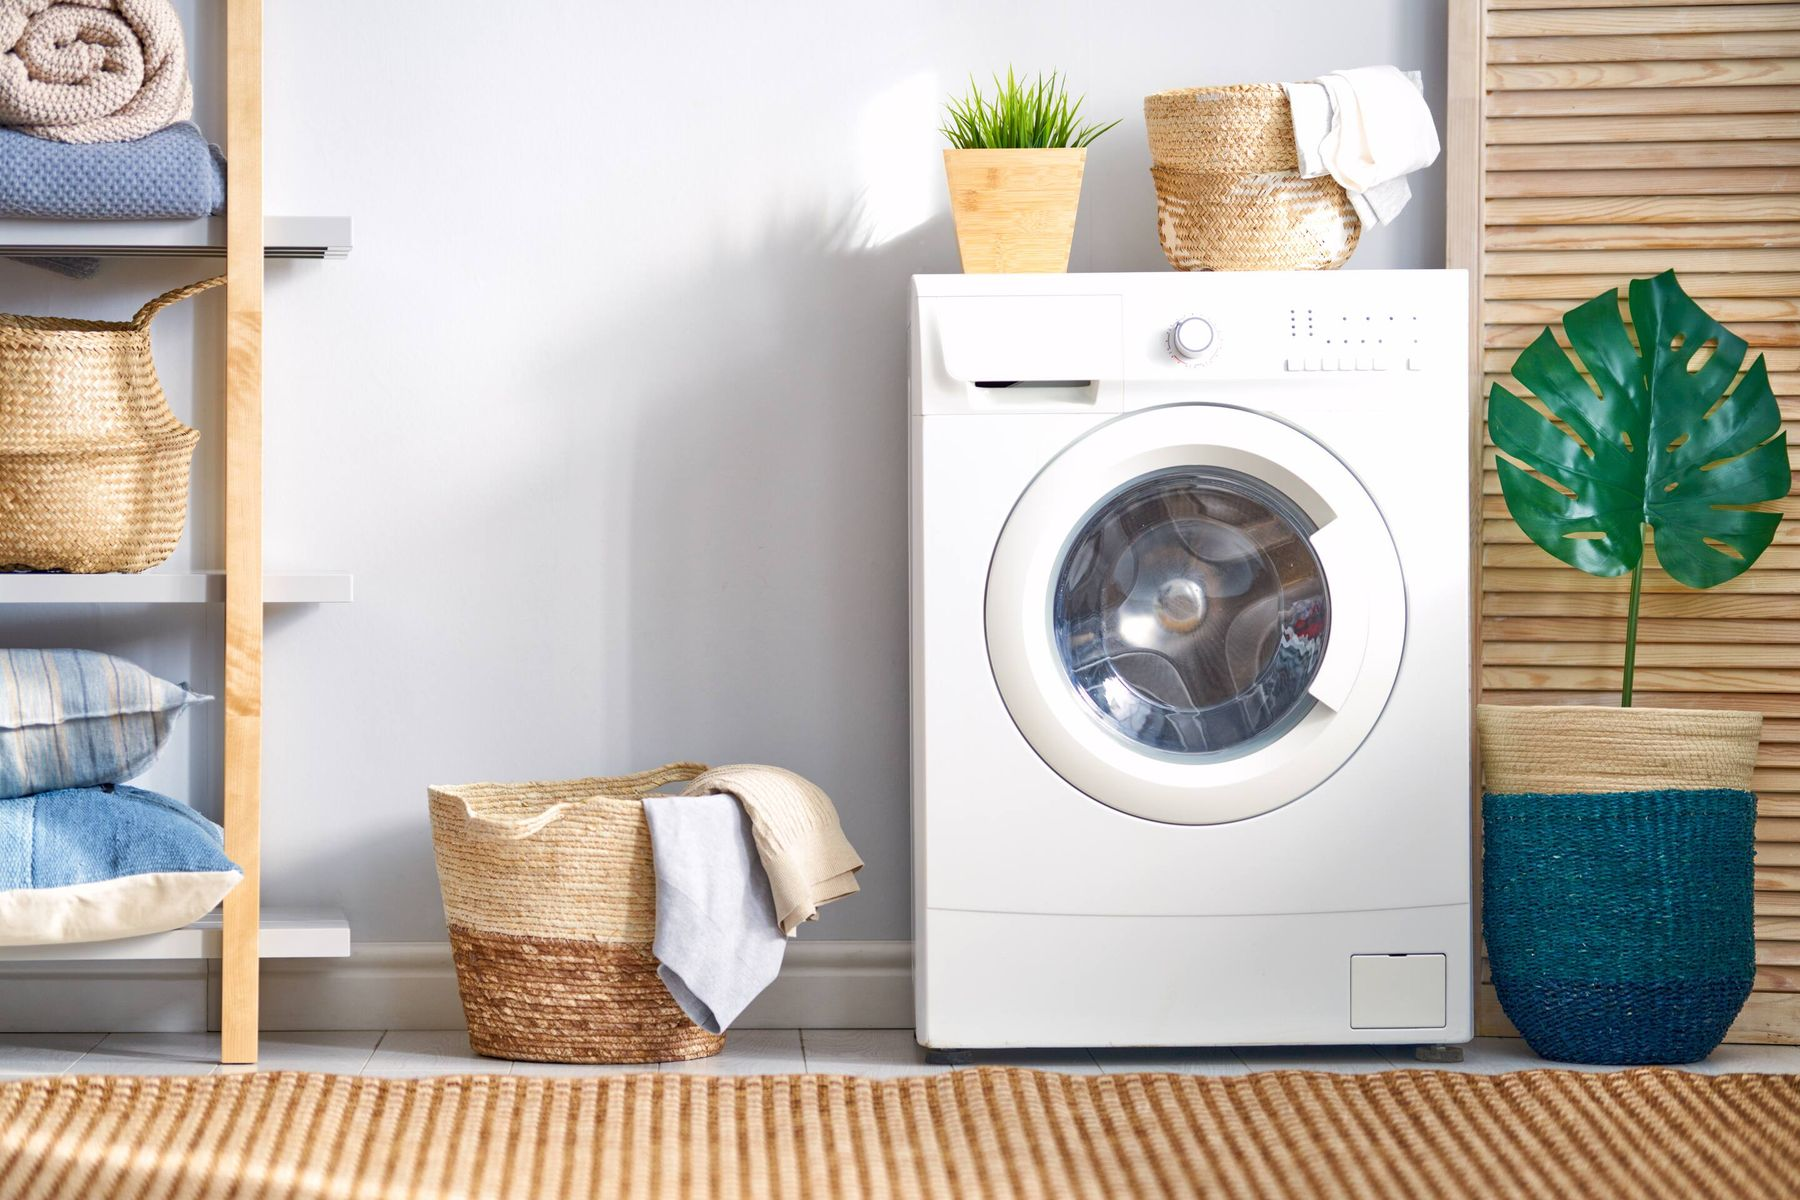 Easy Method to Clean Your Front-Loading Washing Machine